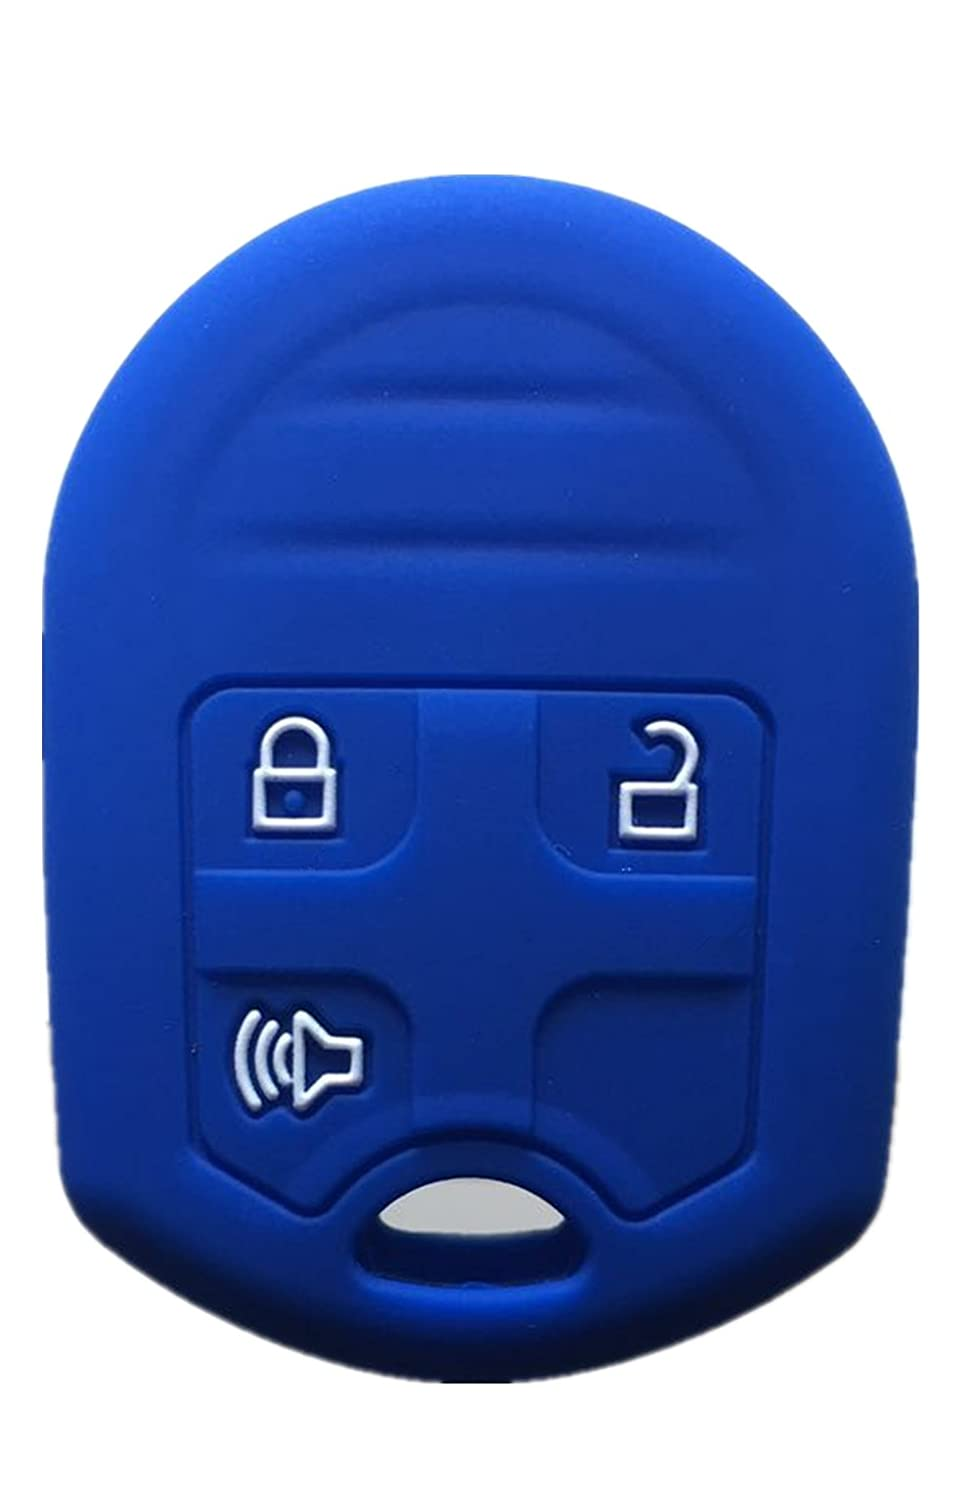 Rpkey Silicone Keyless Entry Remote Control Key Fob Cover Case protector For Ford E-150 E-250 E-350 Super Duty F-150 F-250 F-350 Explorer Edge Flex Fusion CWTWB1U793 164-R8070 CWTWB1U793 ASD